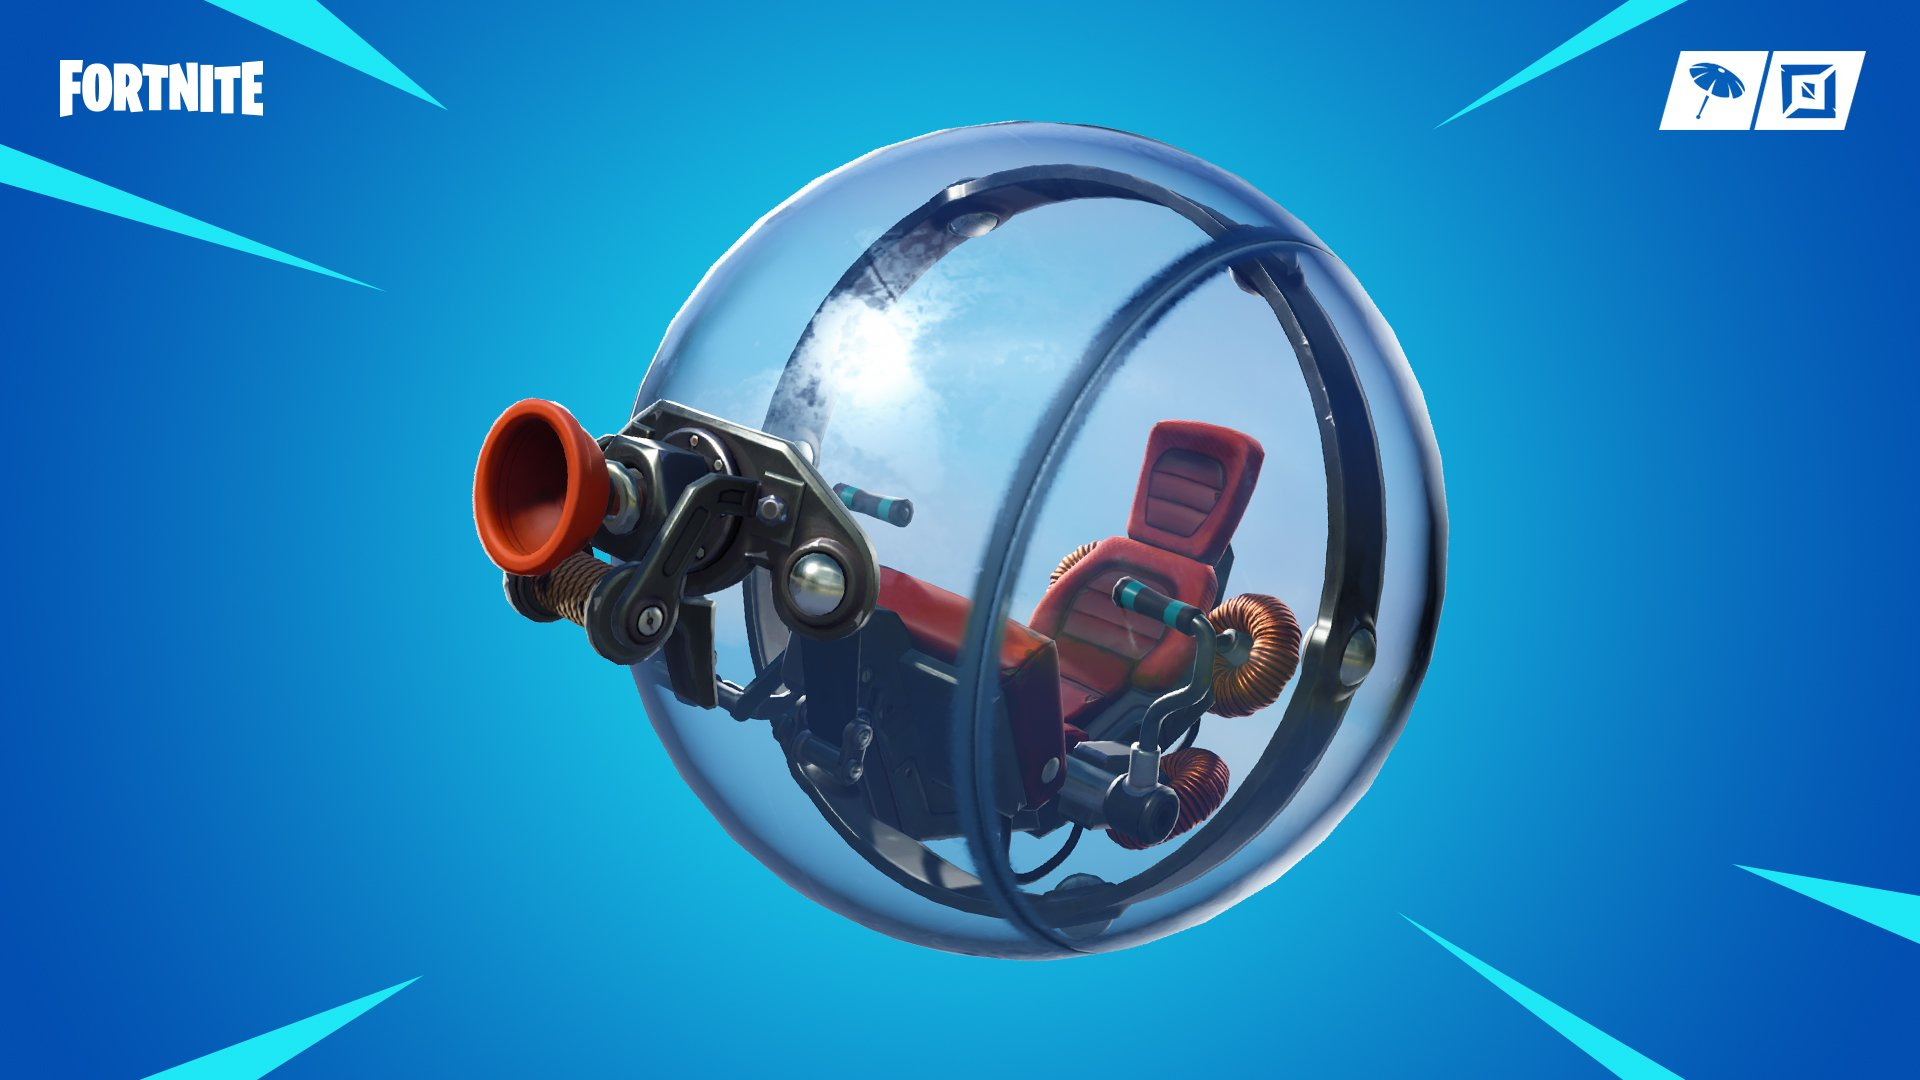 Fortnite patch notes v8.10 The Baller